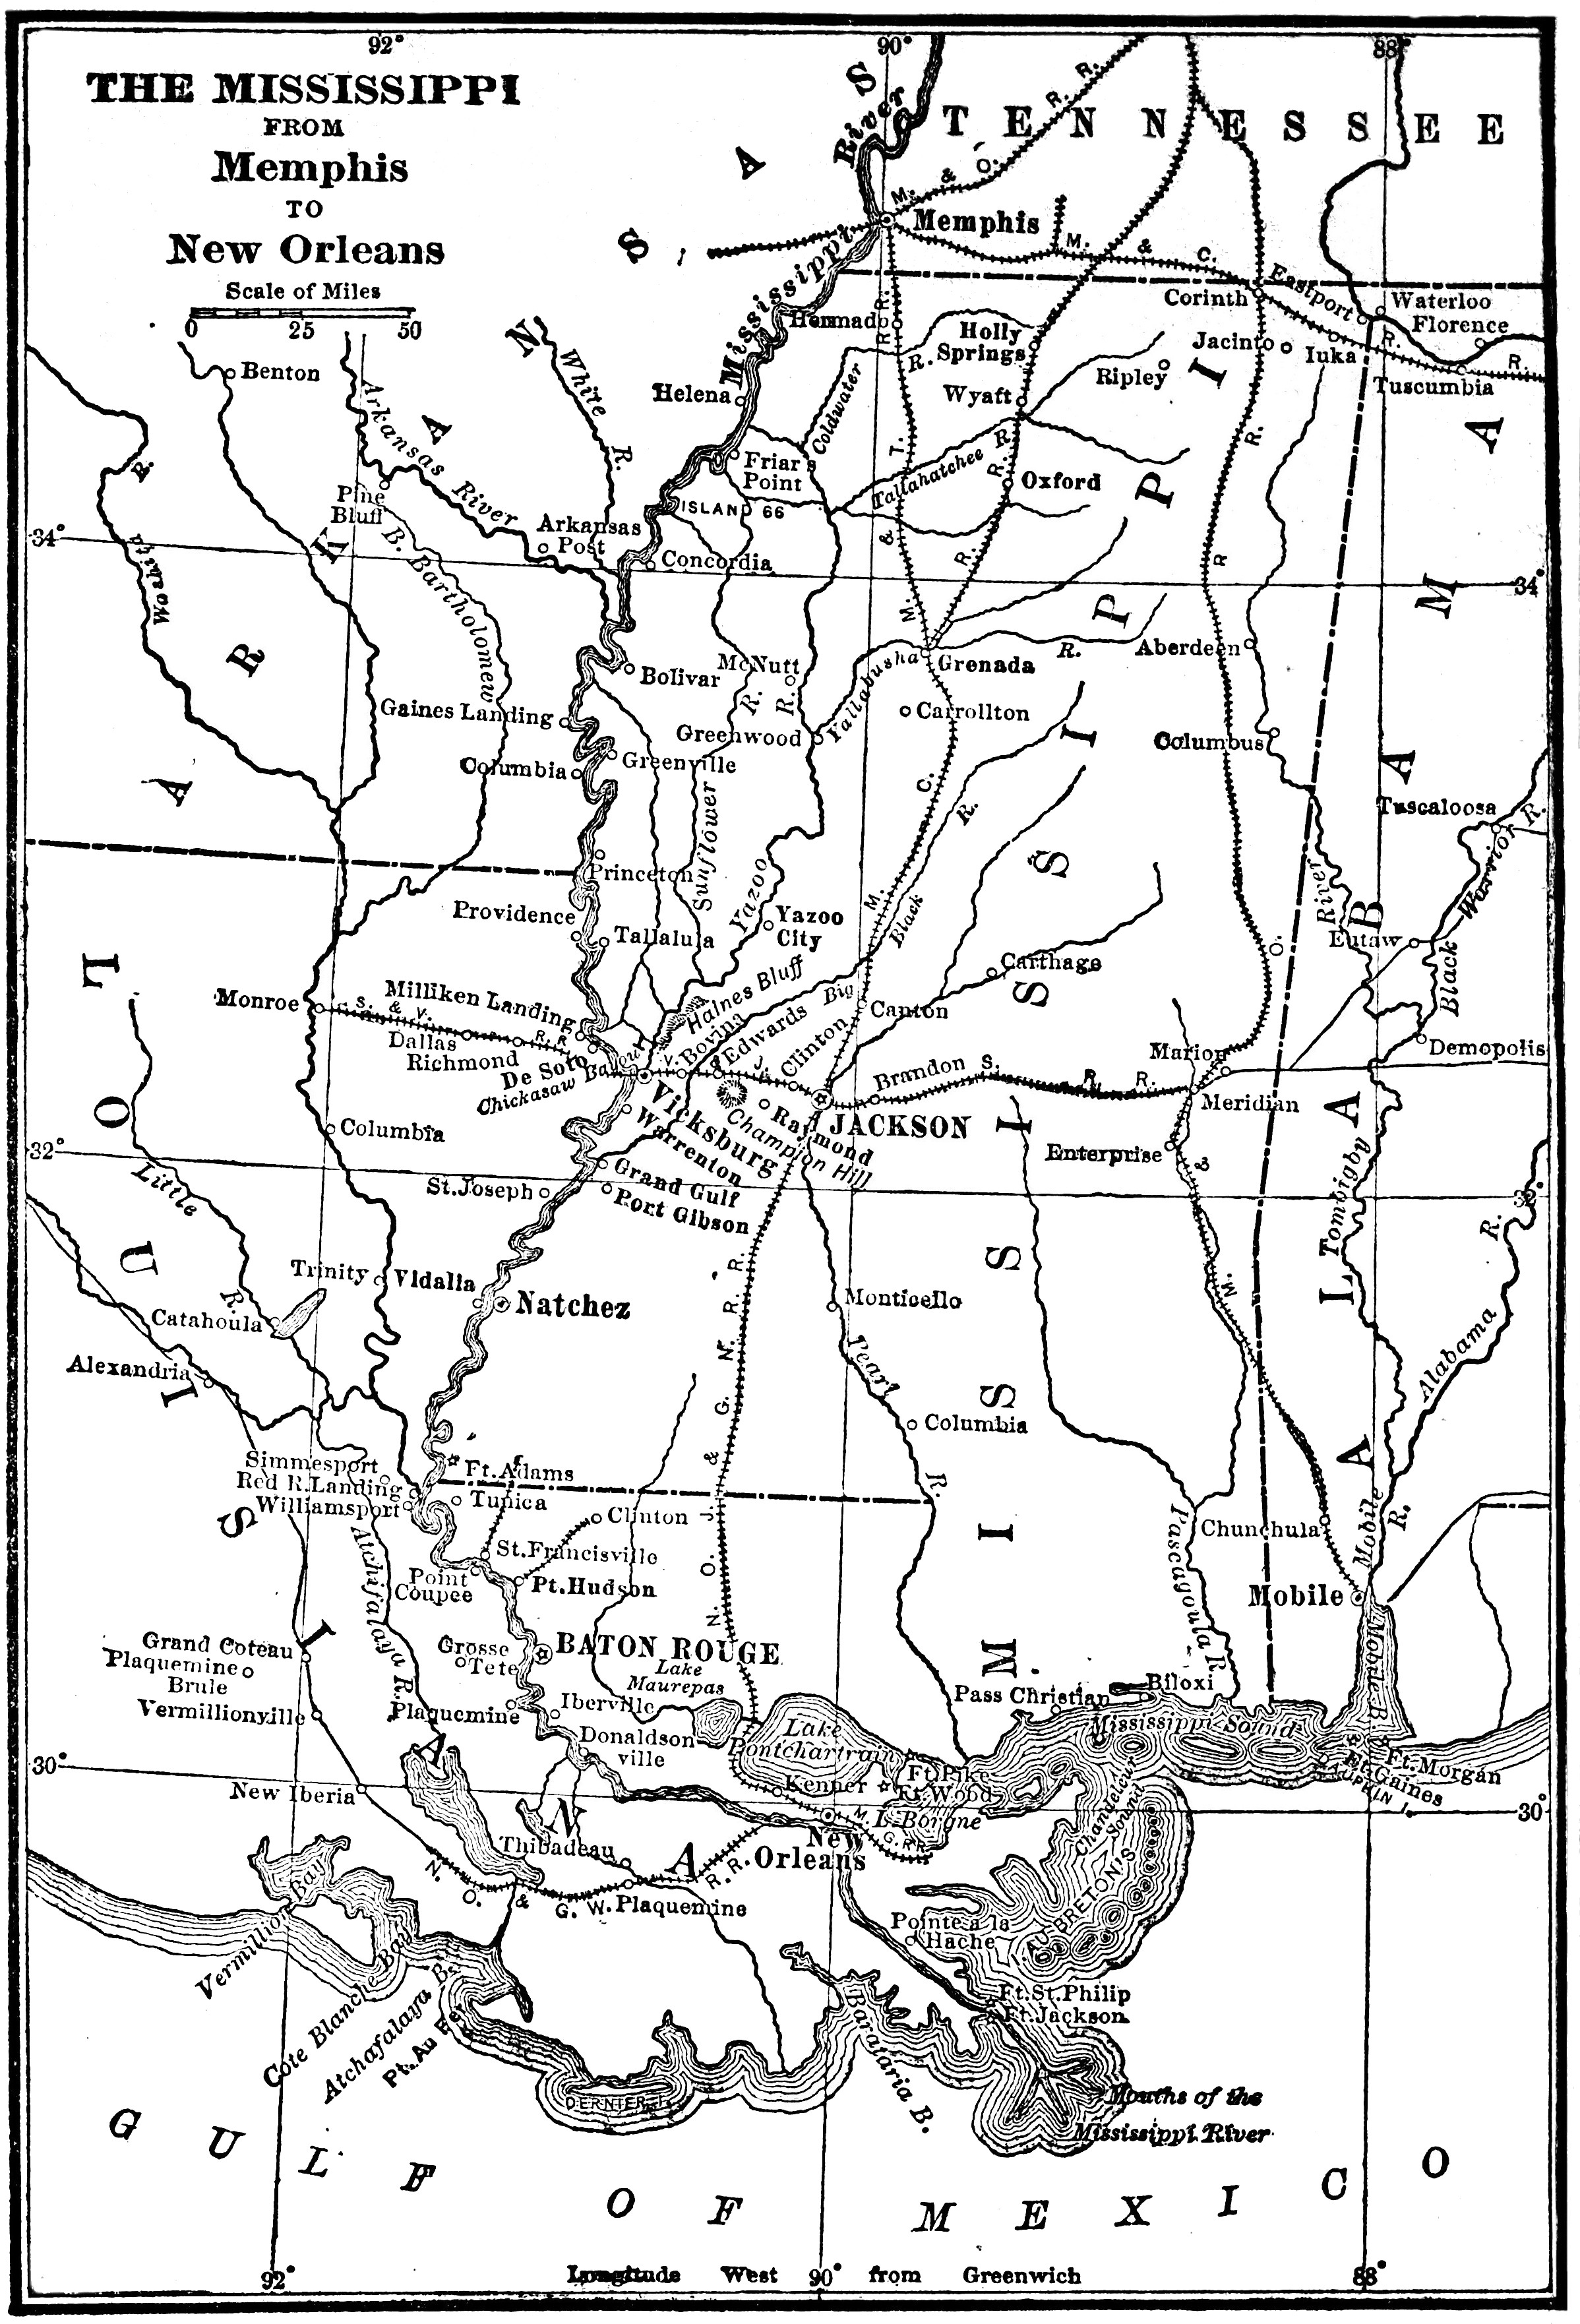 THE MISSISSIPPI FROM Memphis TO New Orleans